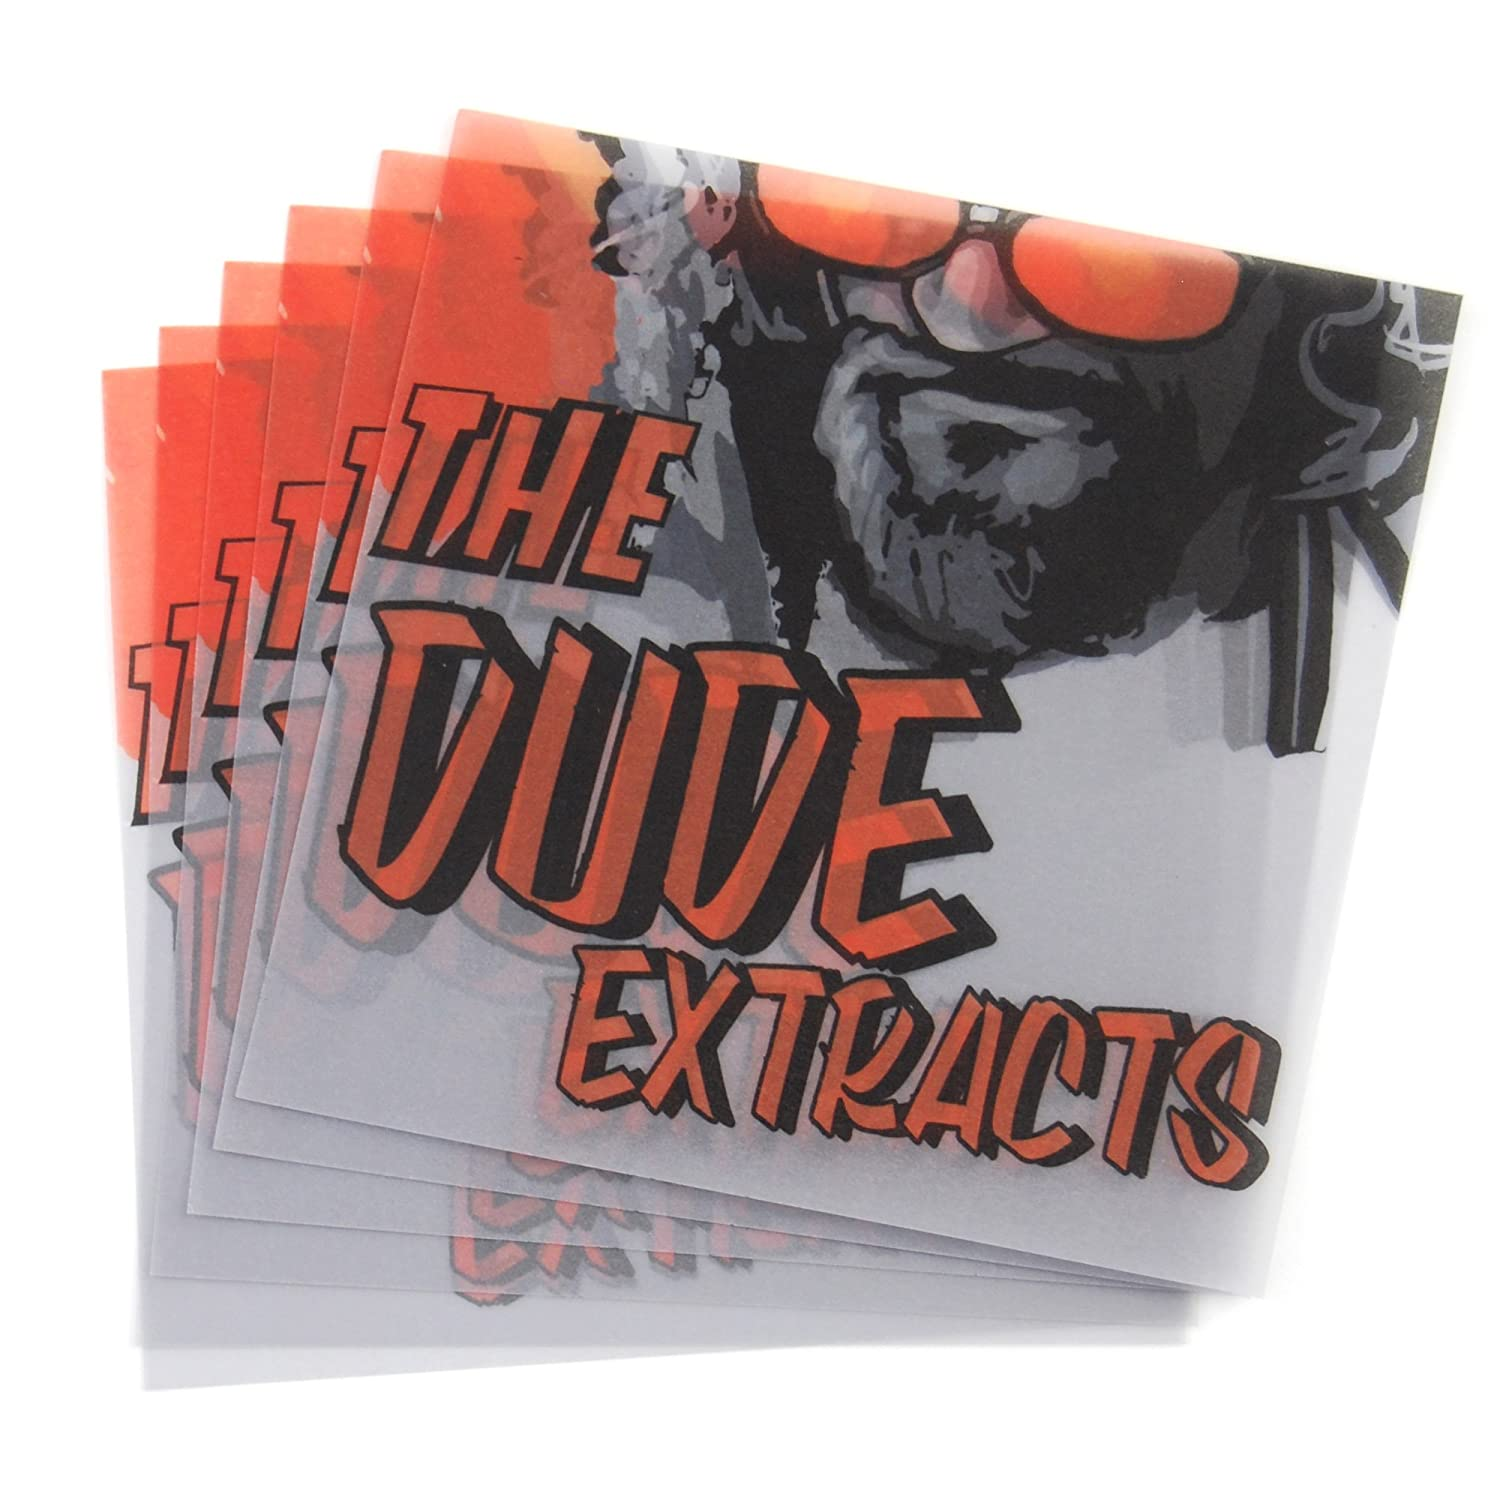 100 The Dude Extracts Parchment Paper MMJ Supply Non Stick Extract Squares 4 x 4 PP-042